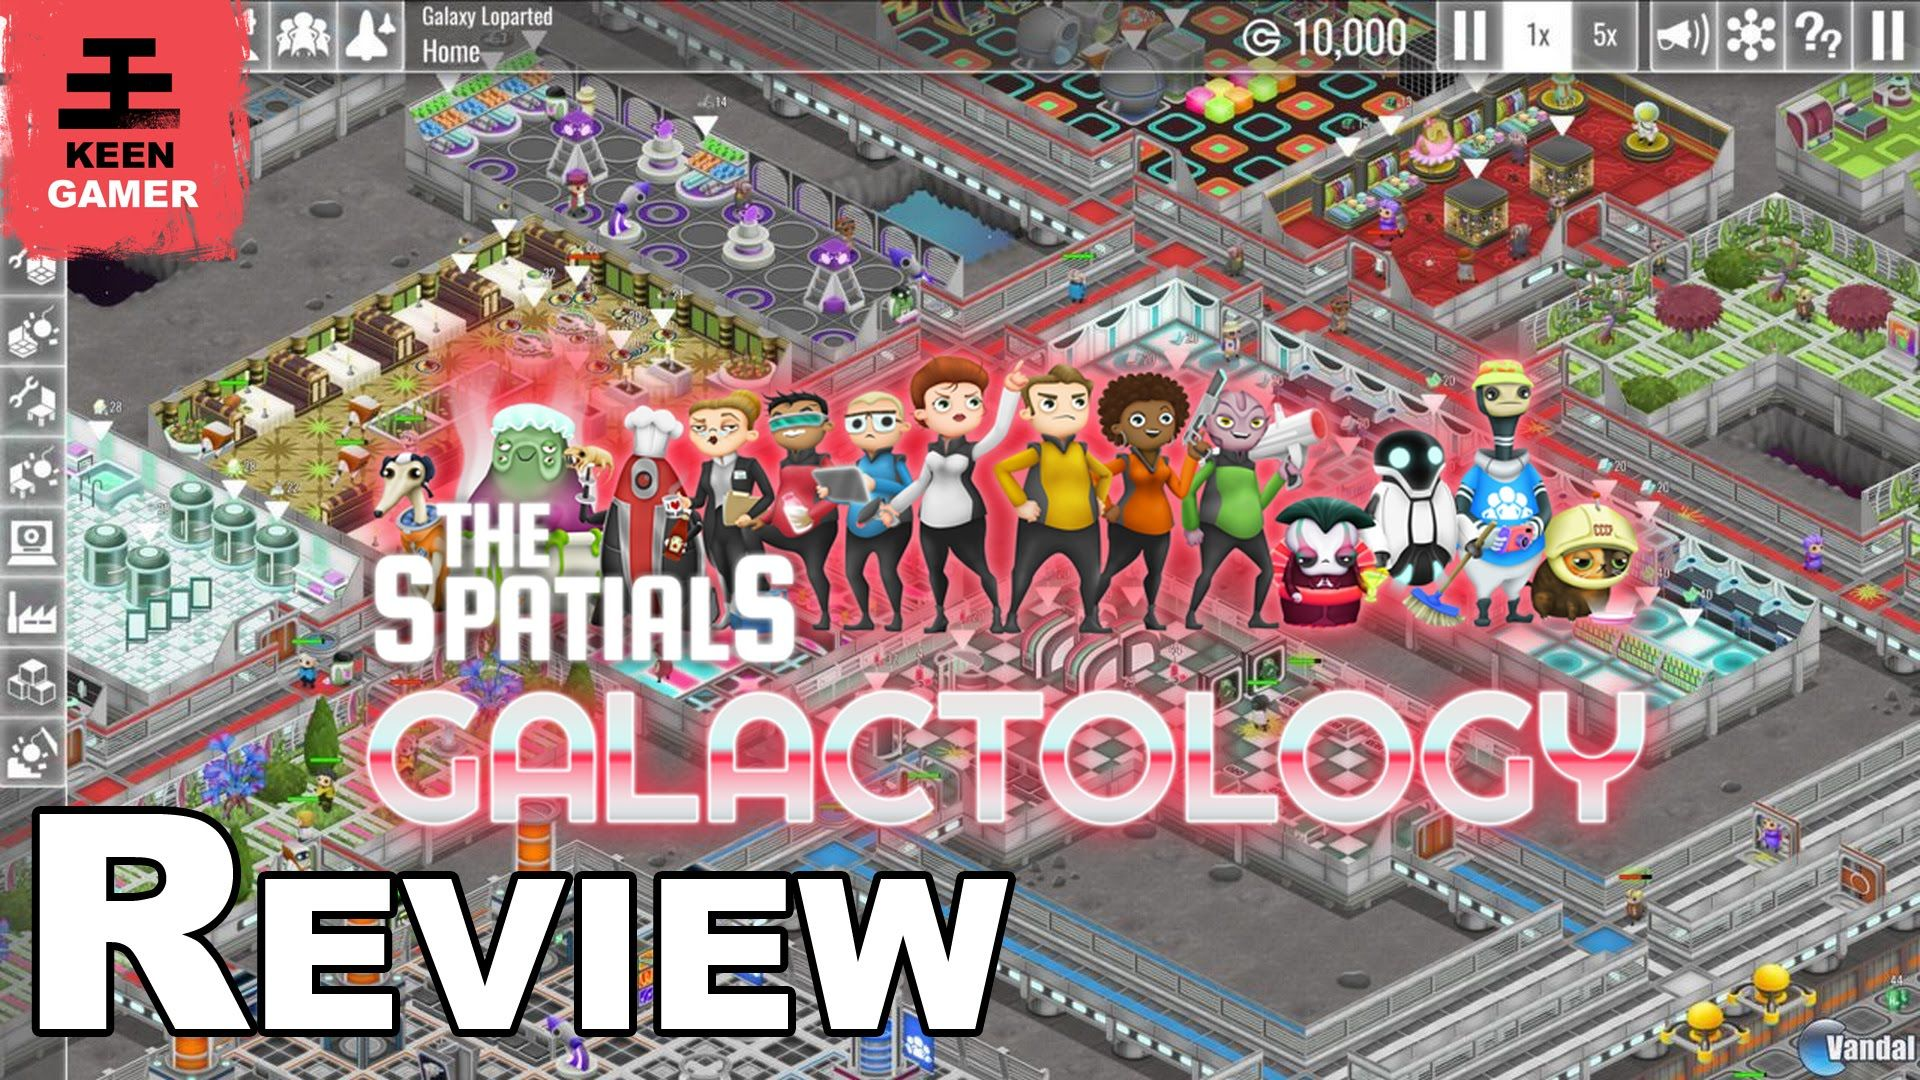 The Spatials Galactology Review